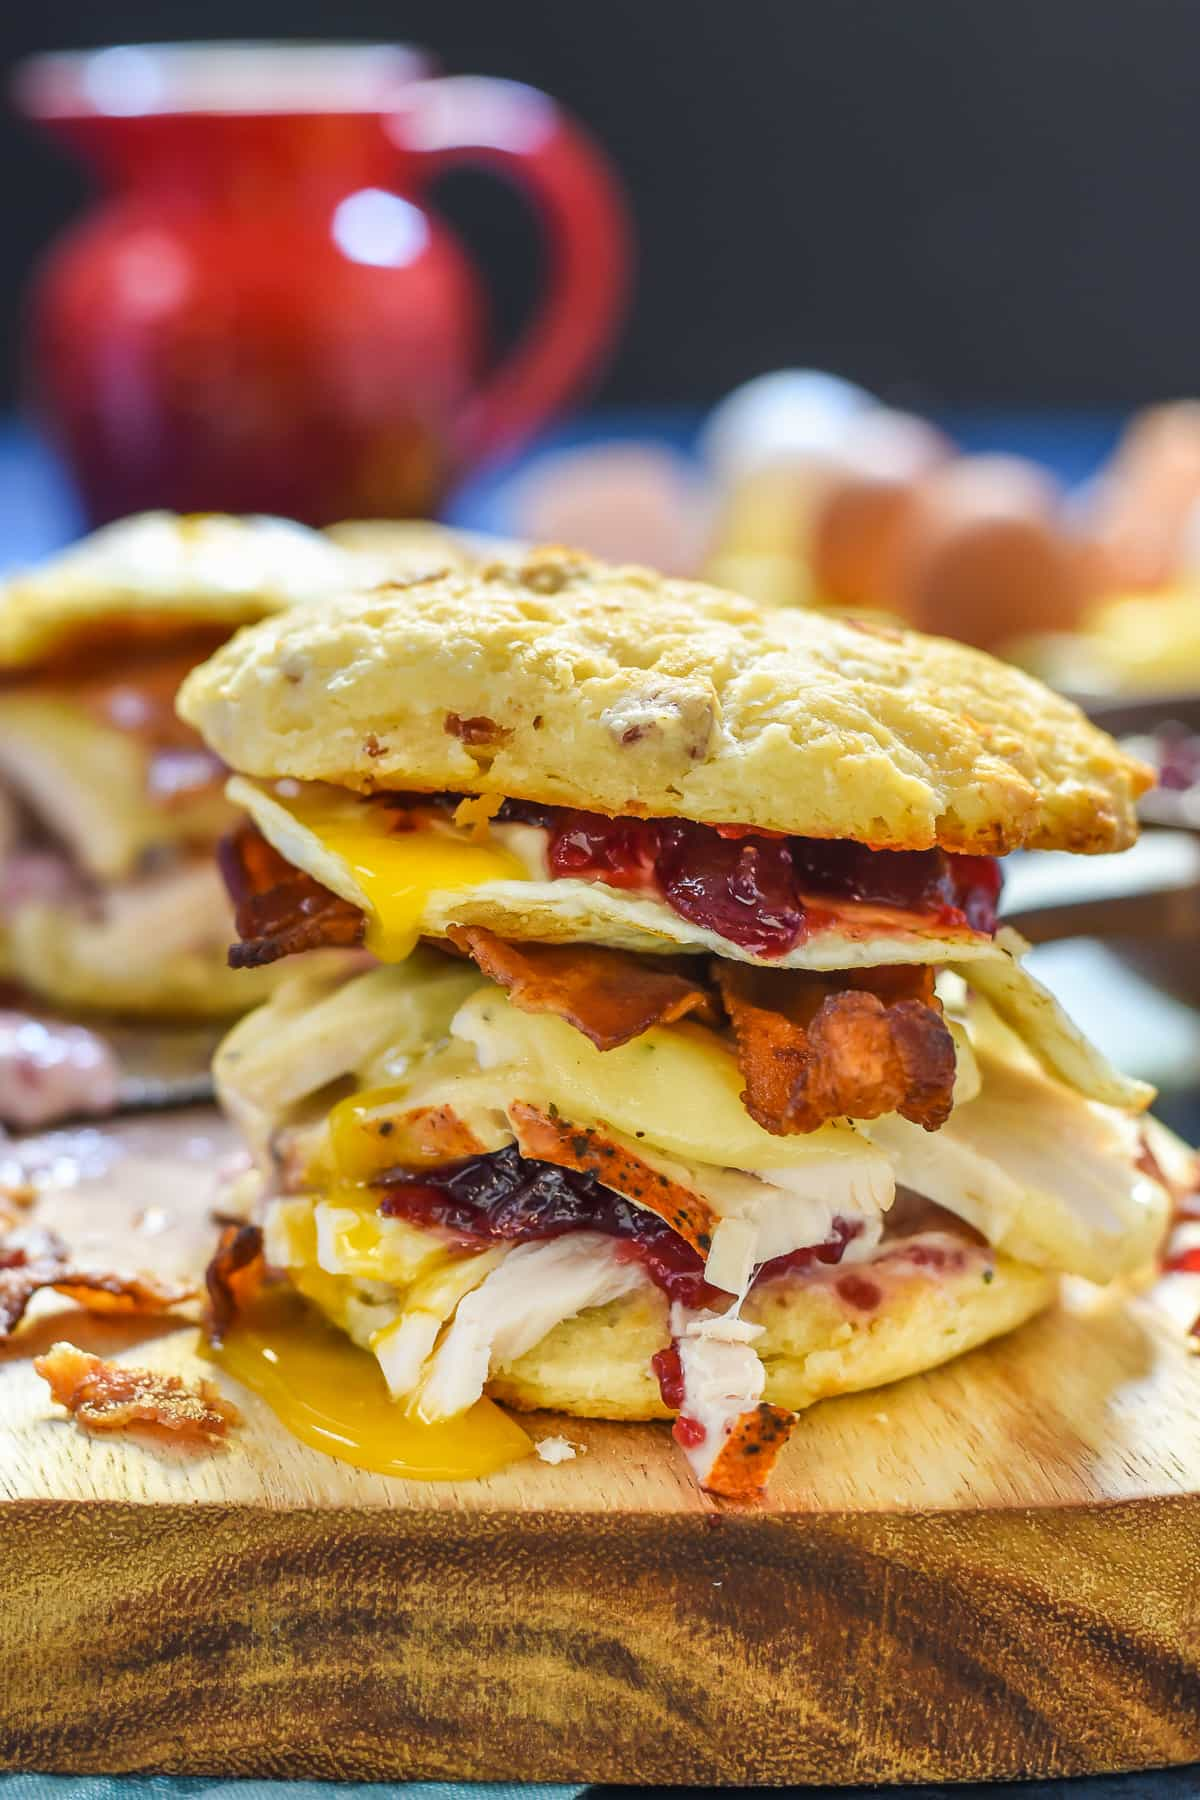 12 Ways to Turn Thanksgiving Leftovers Into Glorious Breakfast Food - Check out some great ideas to help you turn all those delicious leftovers into breakfast! This is probably the best looking breakfast sandwich in existence!